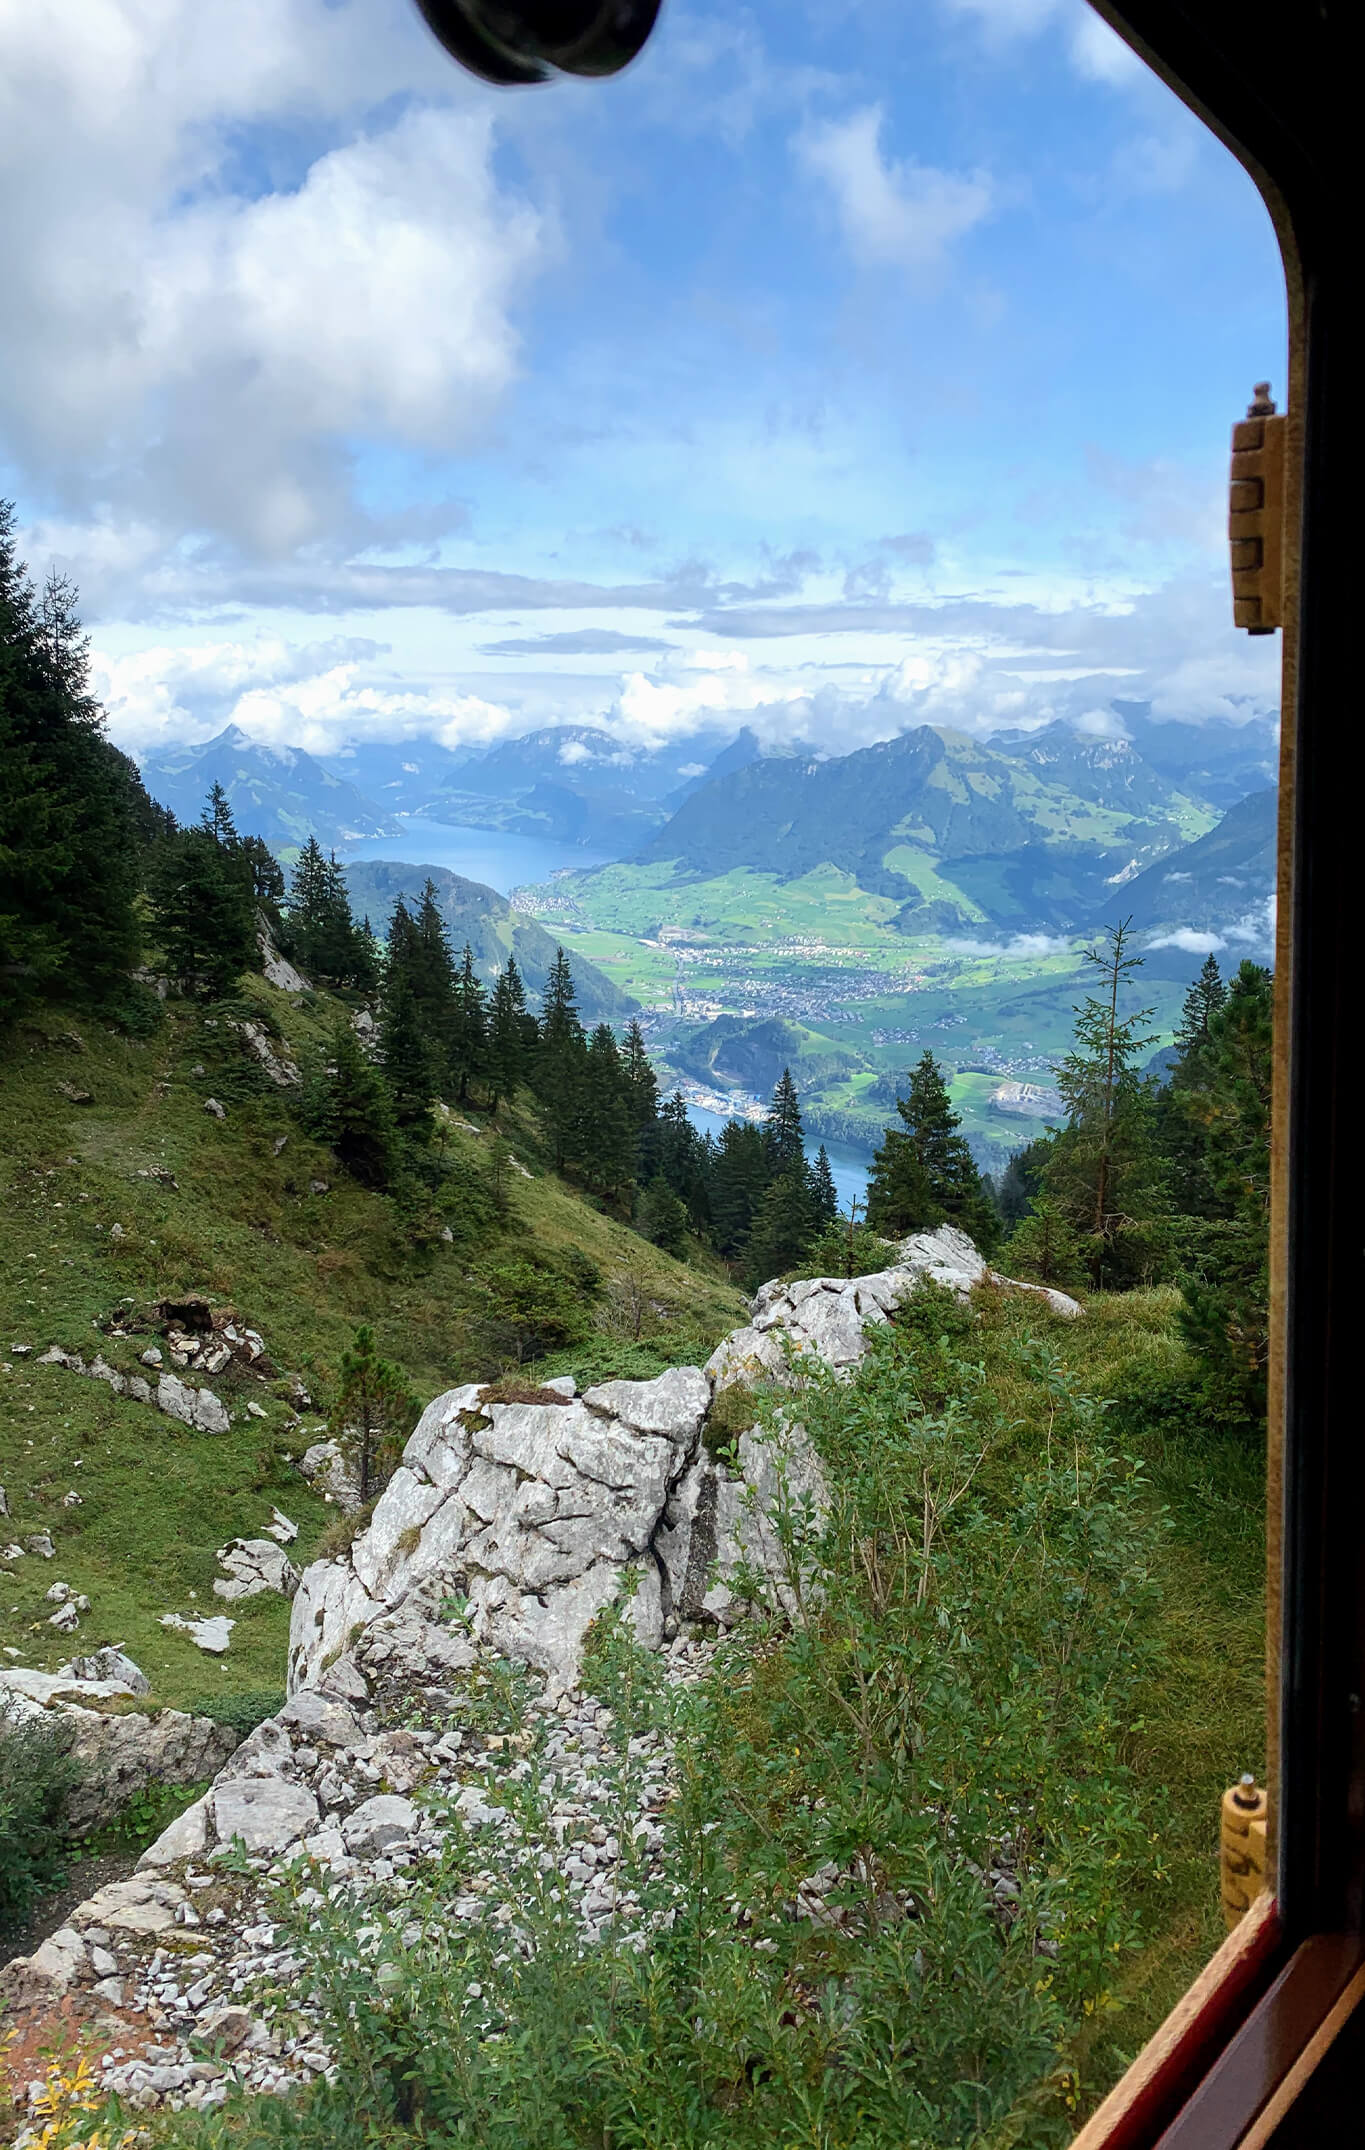 looking out a train window on mt pilatus